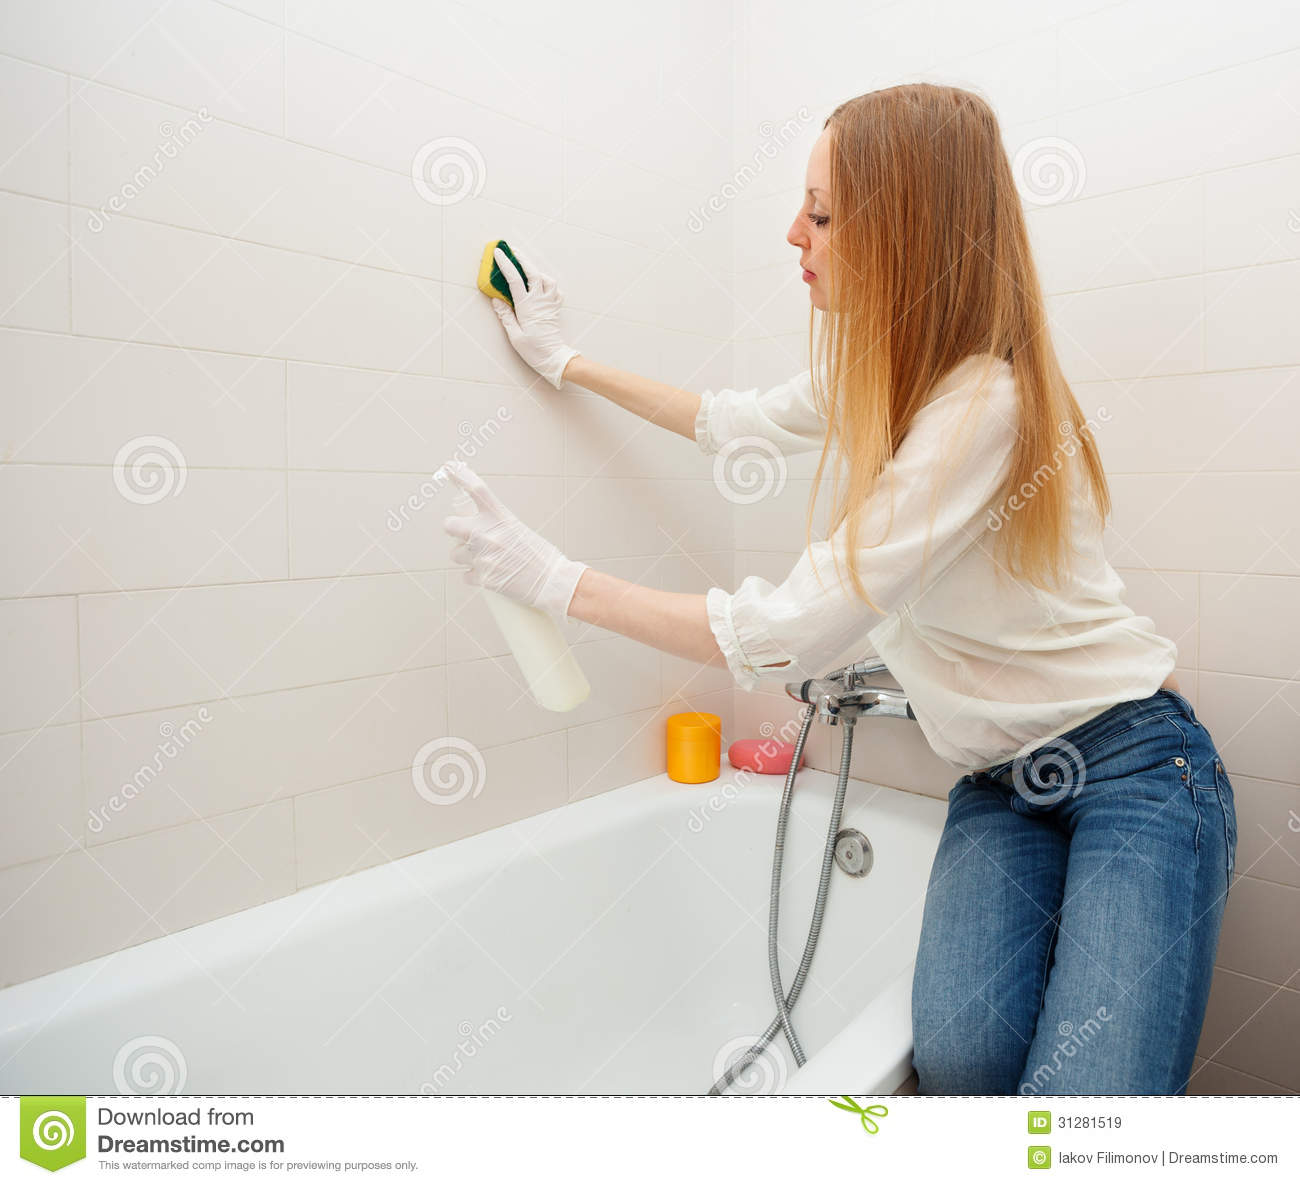 Long Haired Woman Cleaning Tile With Sponge In Bathroom